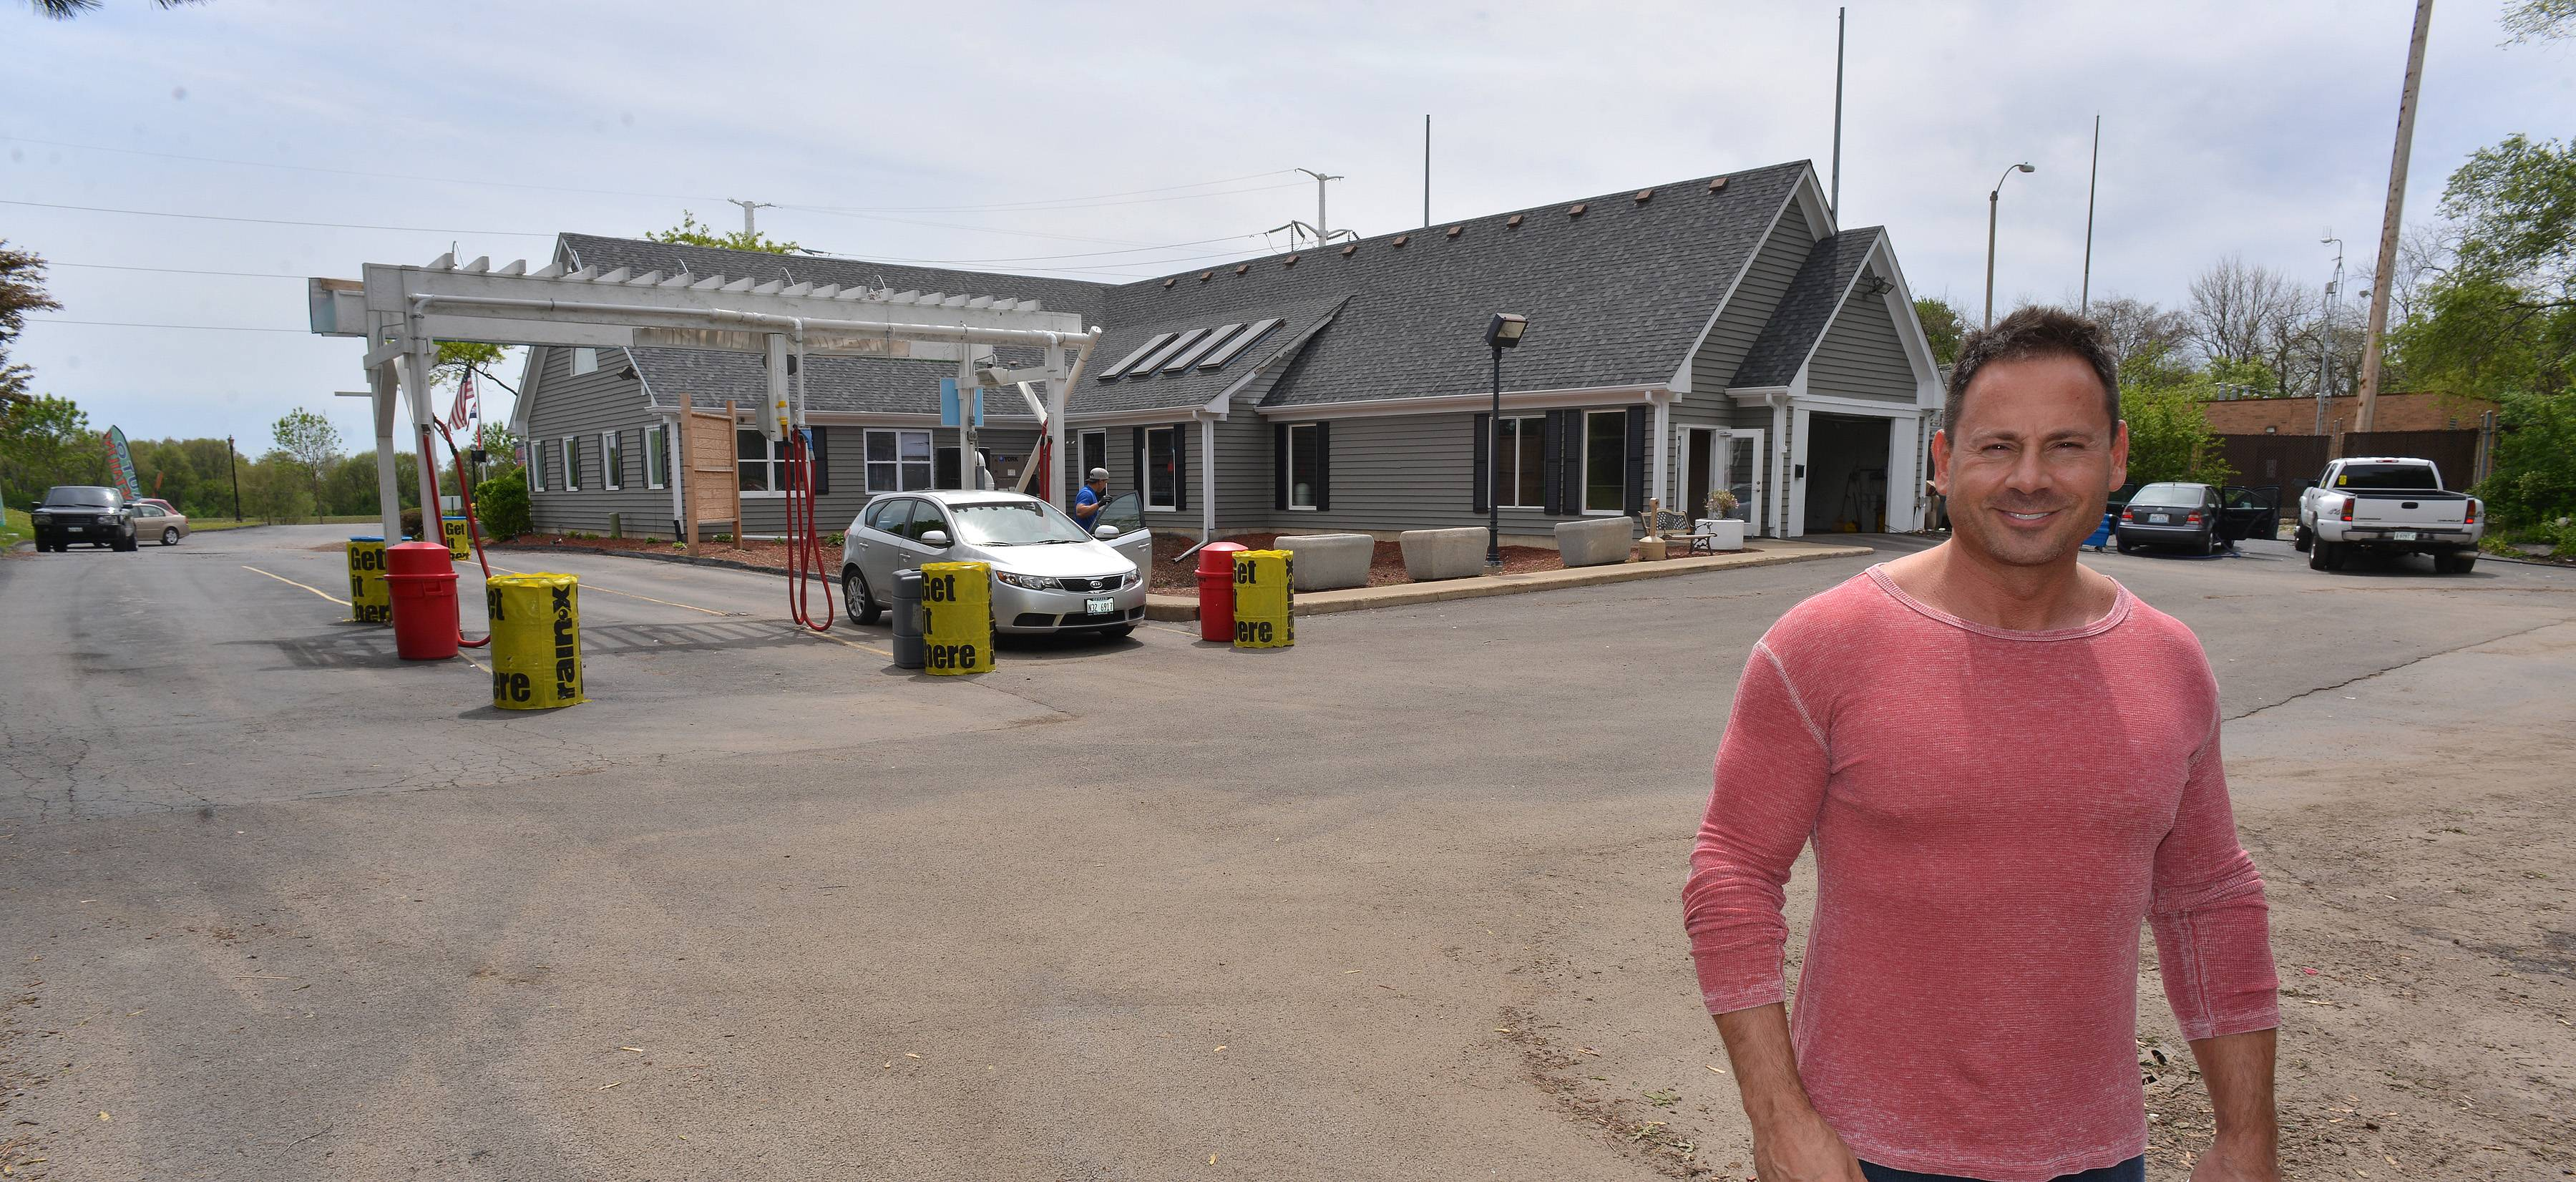 Owner Bill Loumbardias stands in the area where used cars will be offered for sale at the Finish Line Car Wash on 75th Street near Naper Boulevard in Naperville. A maximum of 28 cars will be allowed on the property at any one time behind the existing car wash.